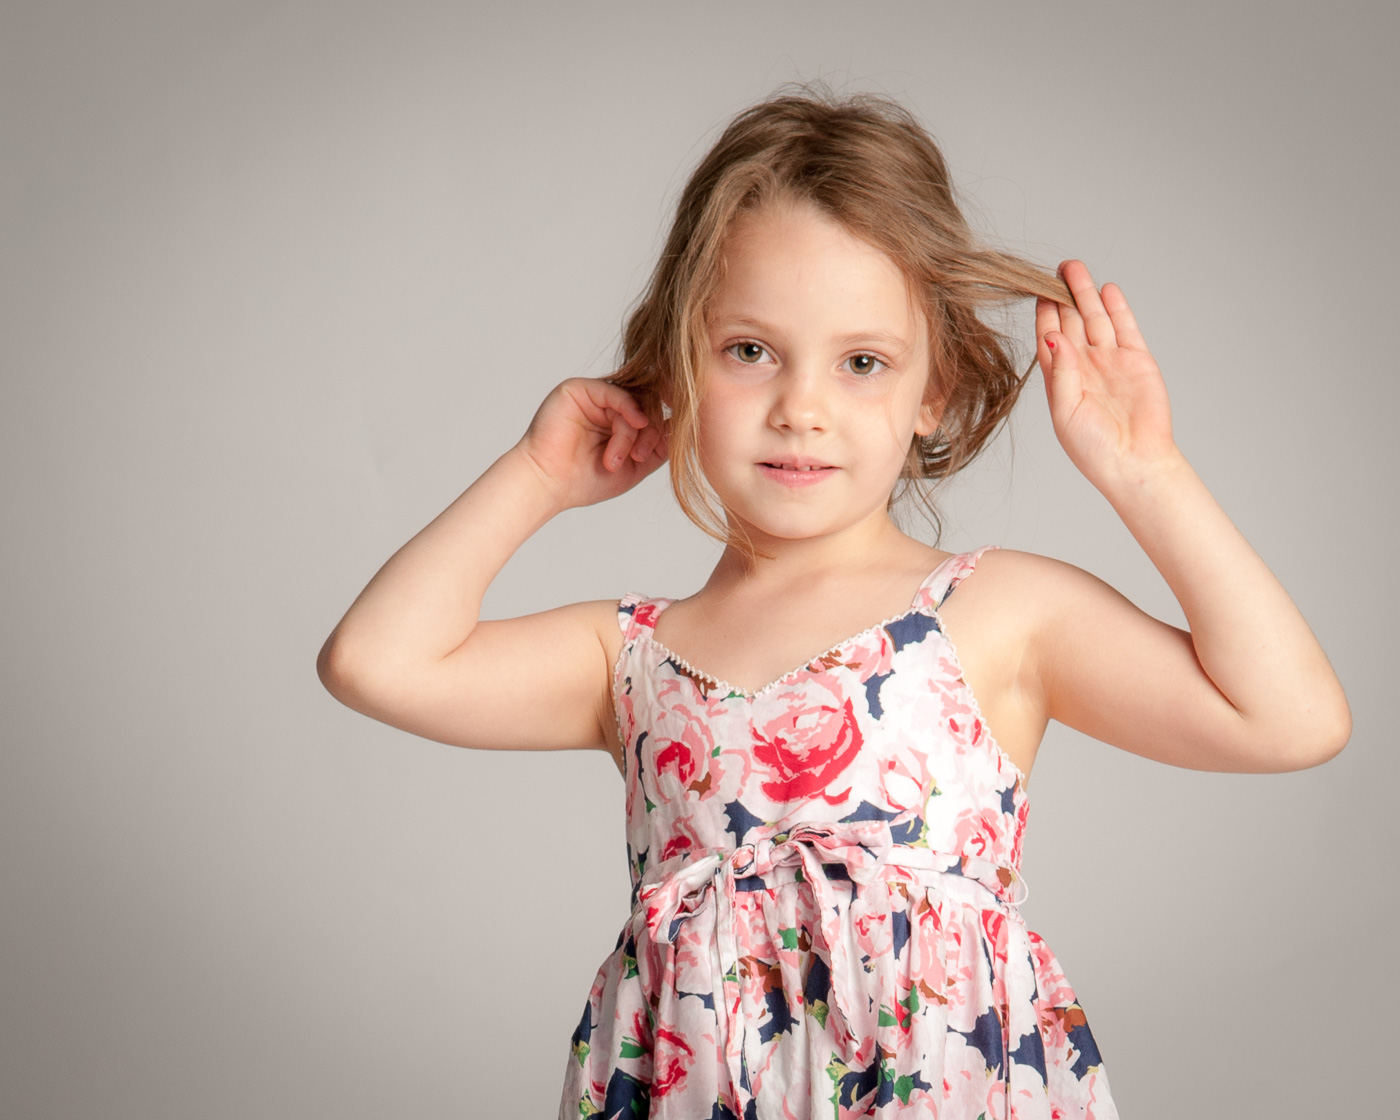 Child portrait photography - Studio